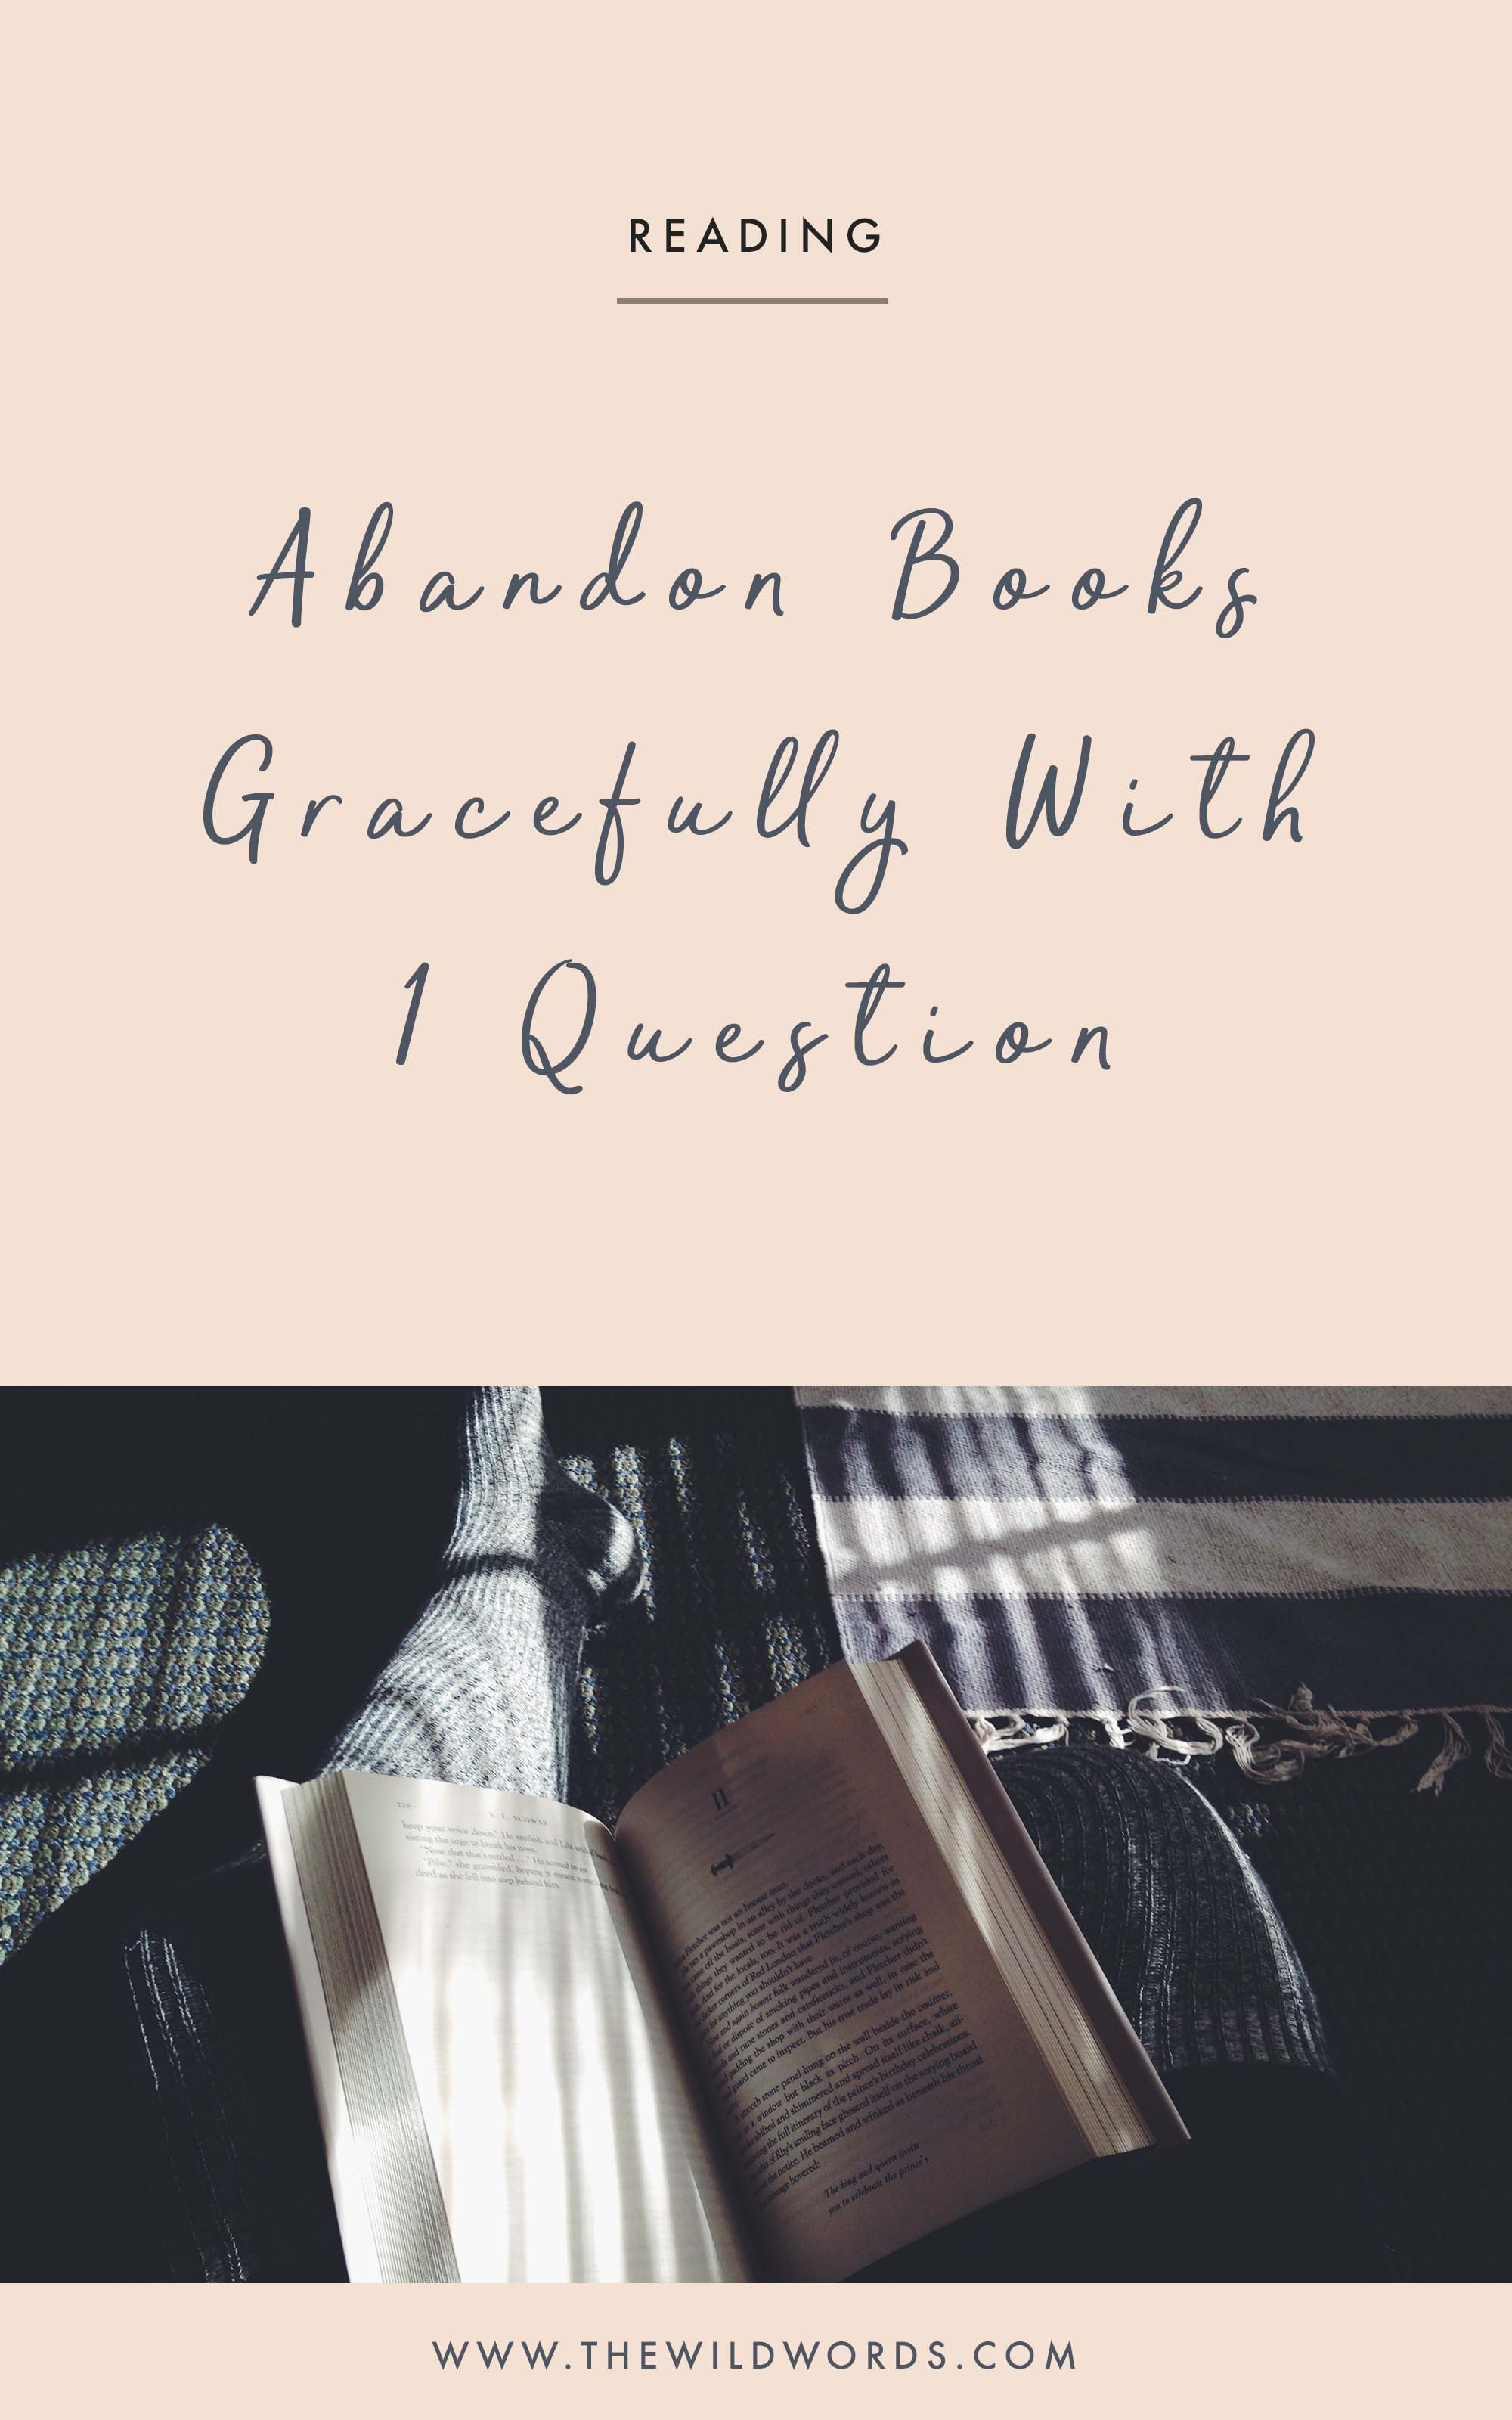 How to Abandon Books Gracefully | Wild Words